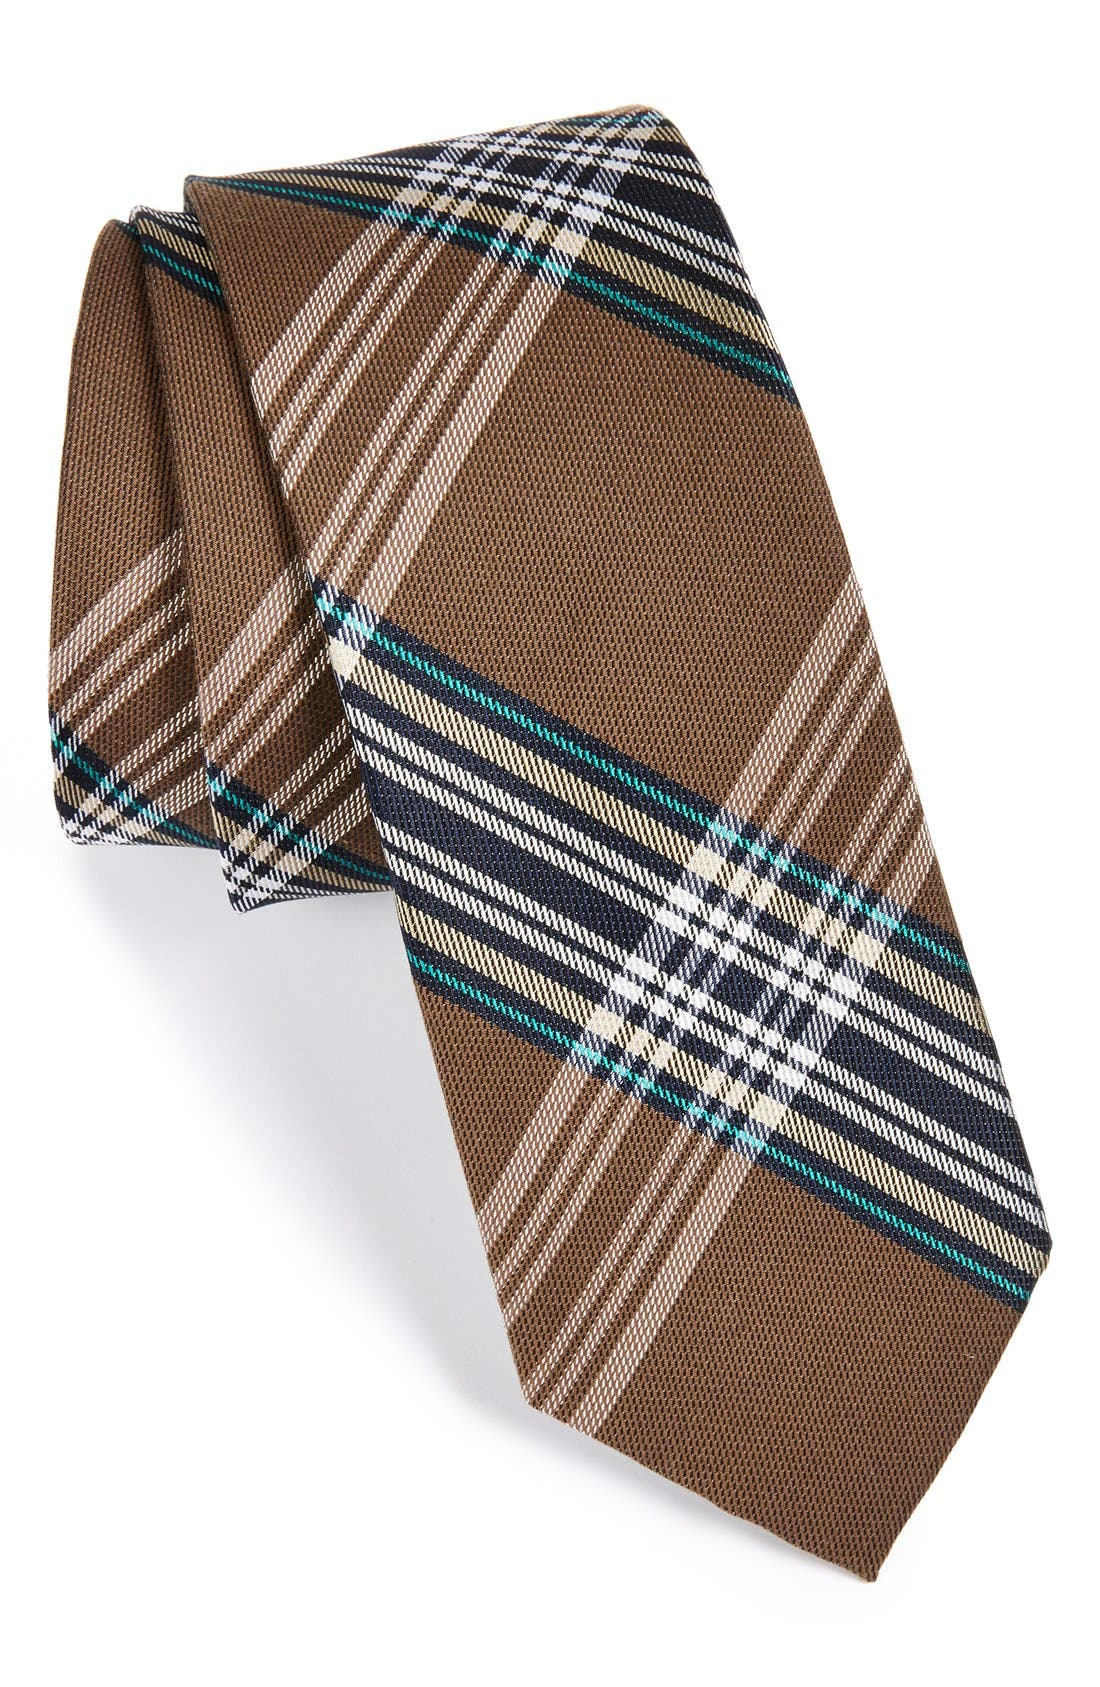 'Delores' Plaid Silk & Cotton Tie,                             Main thumbnail 1, color,                             200